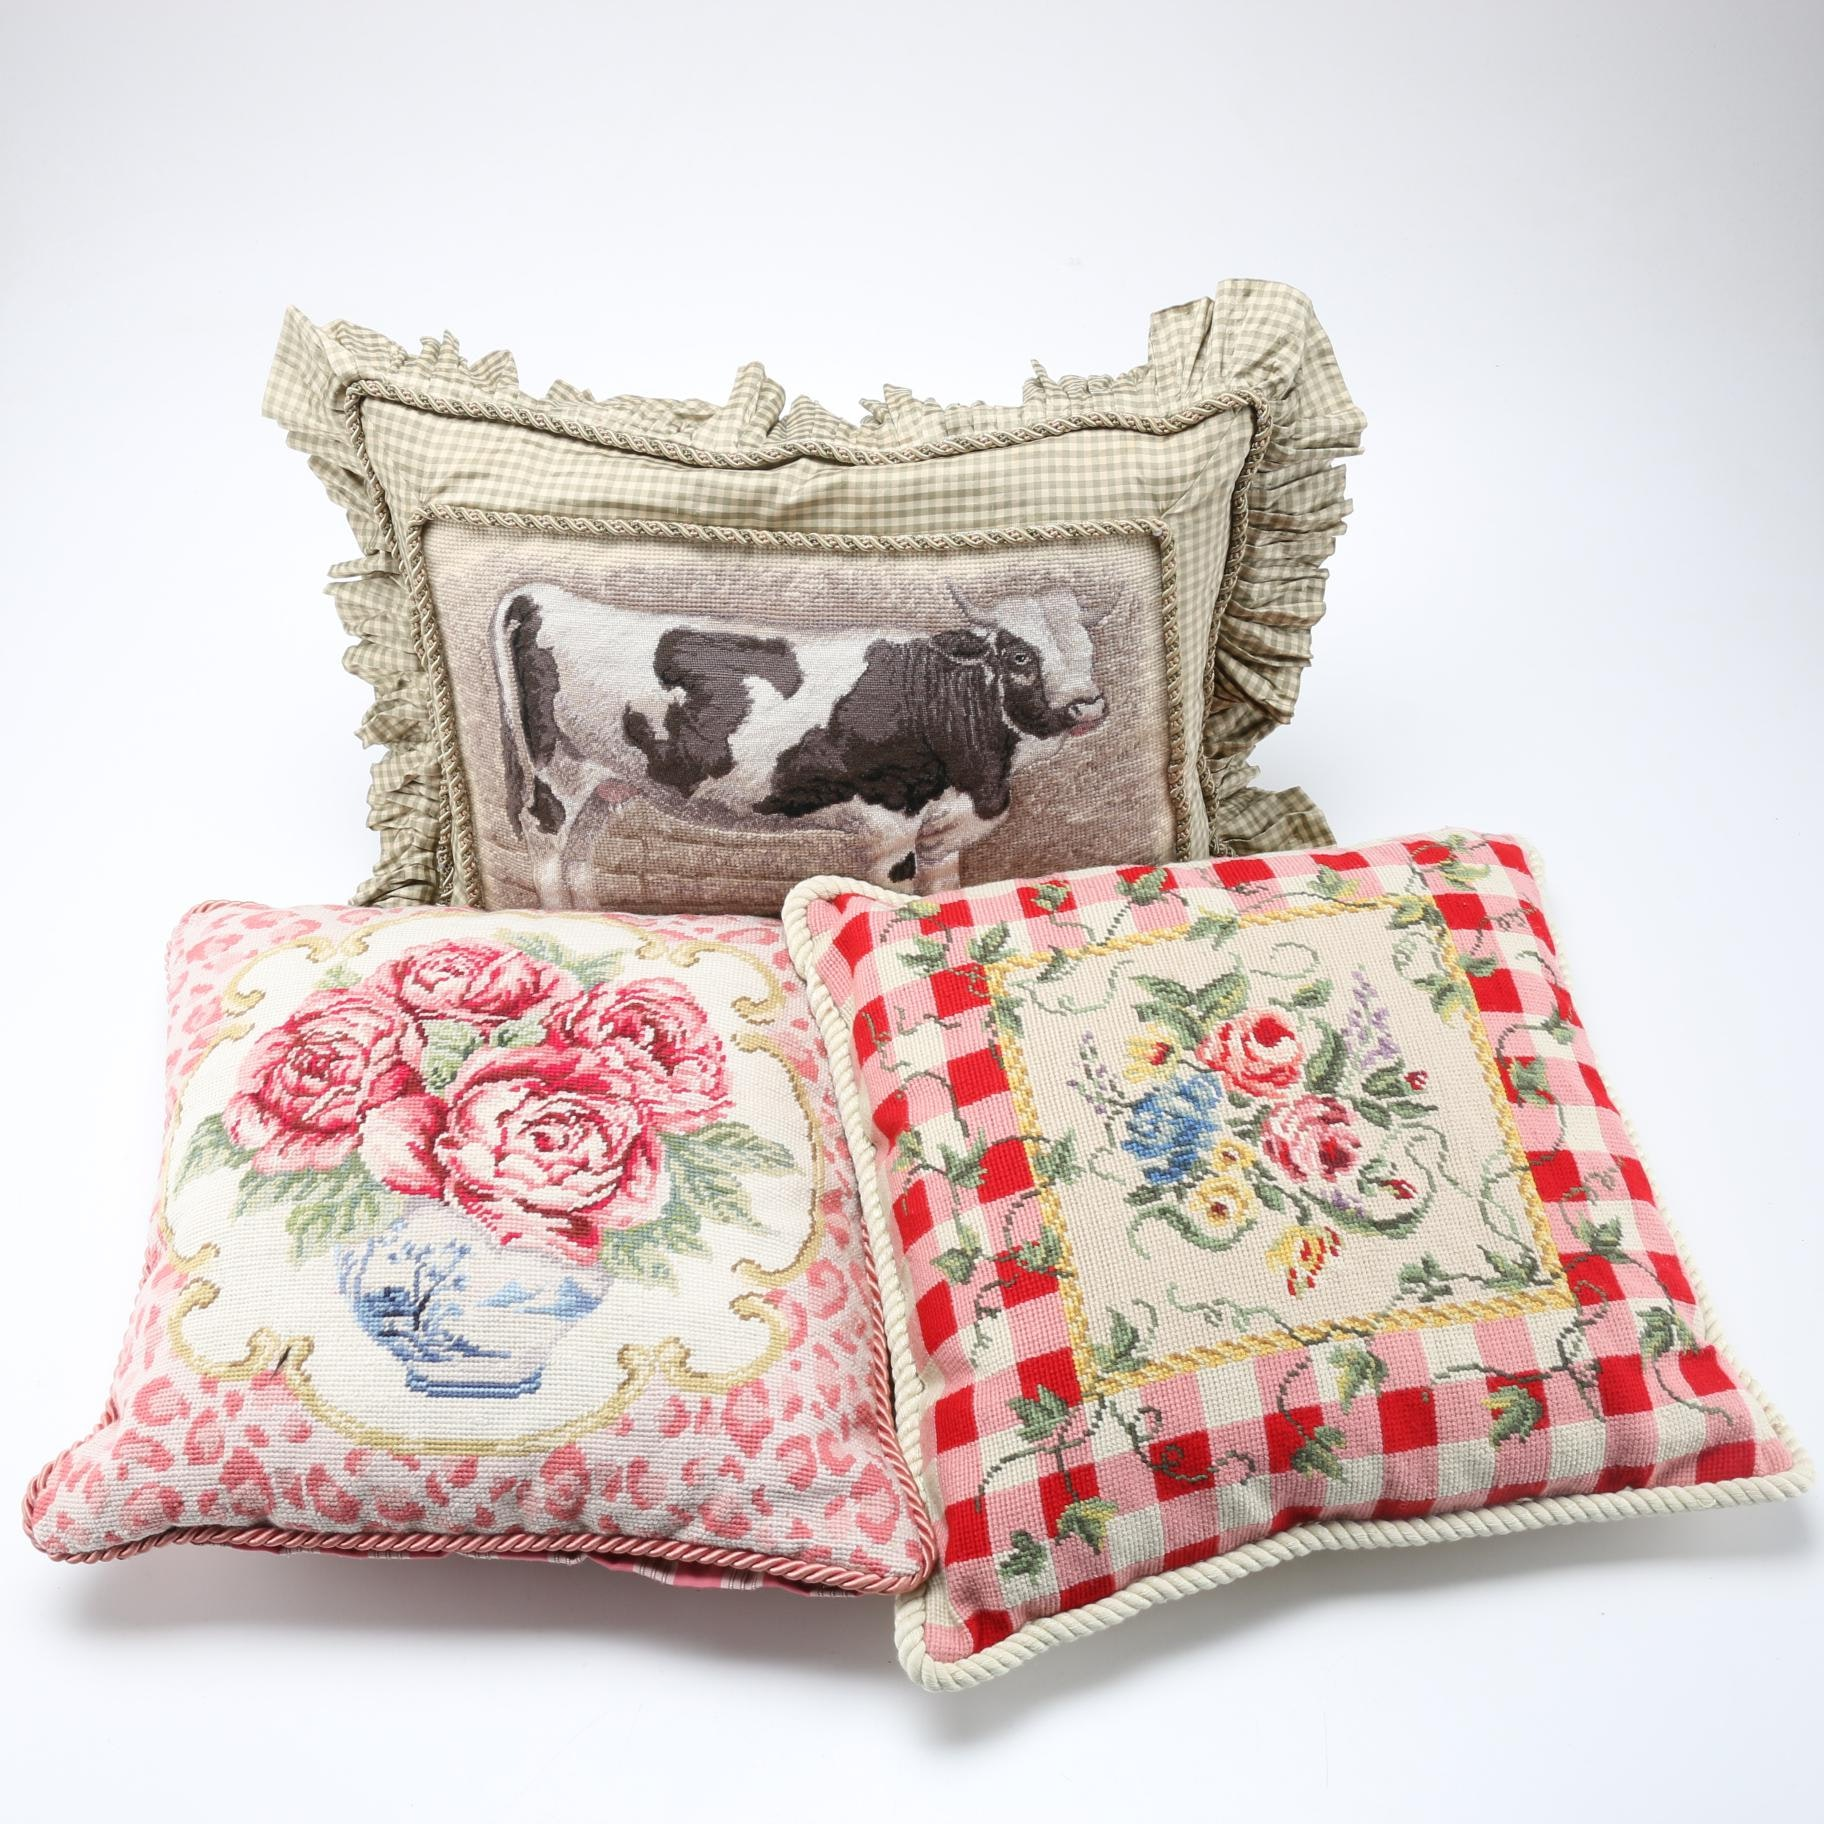 Country Chic Needlepoint Accent Pillows